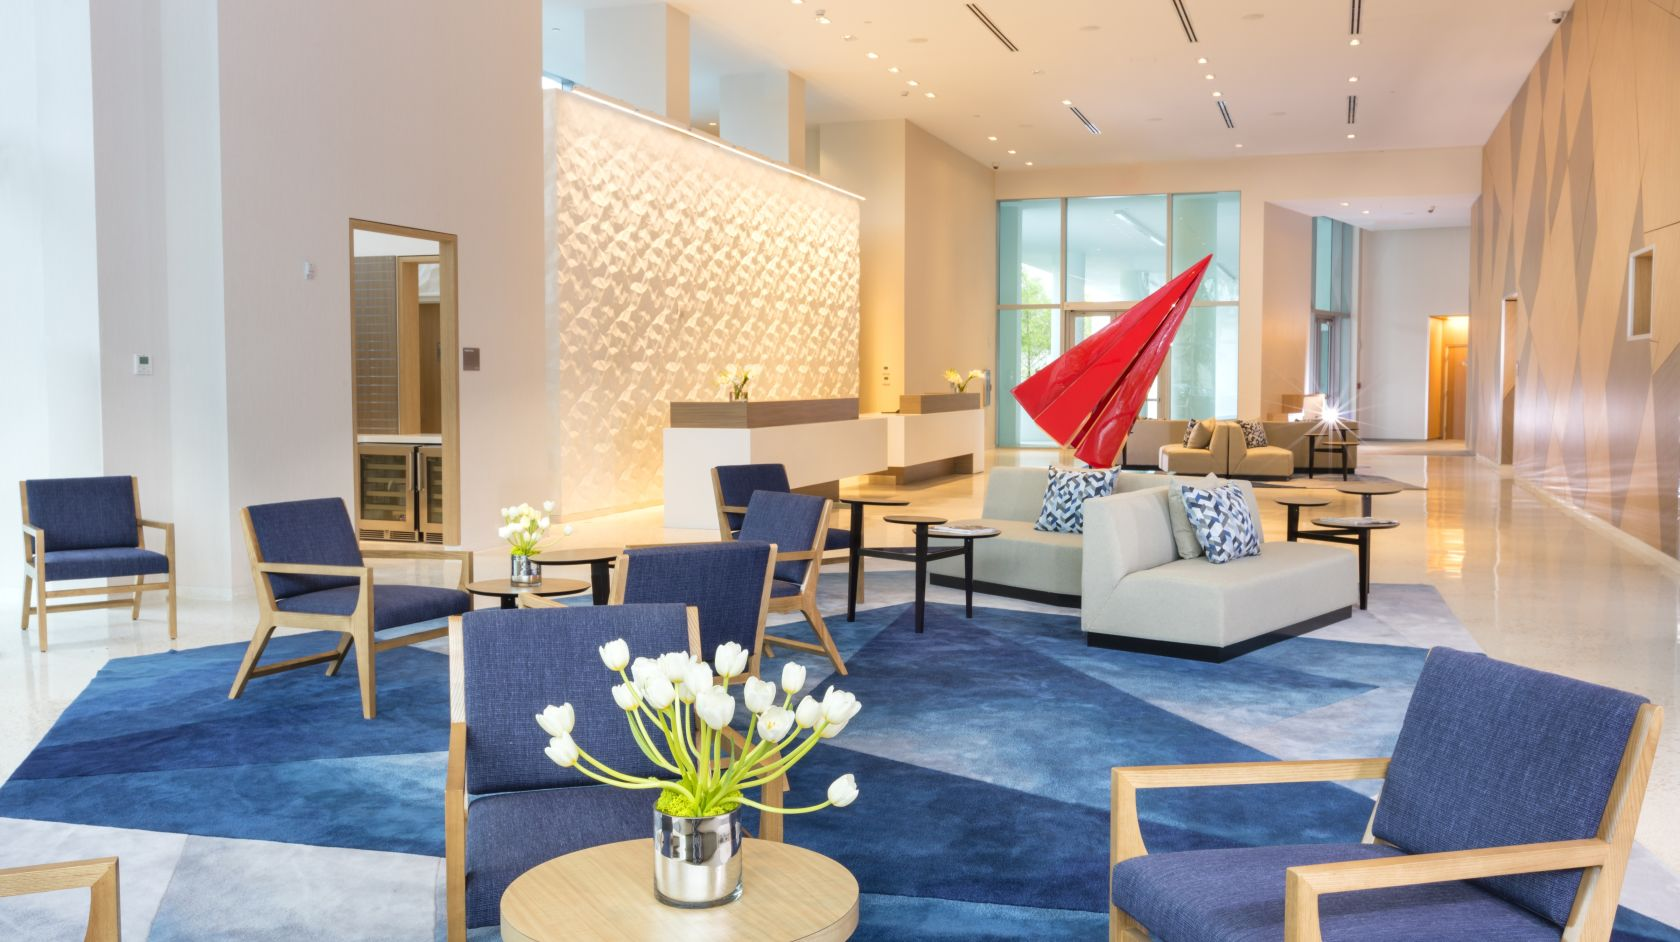 lobby area at Novotel Miami Brickell